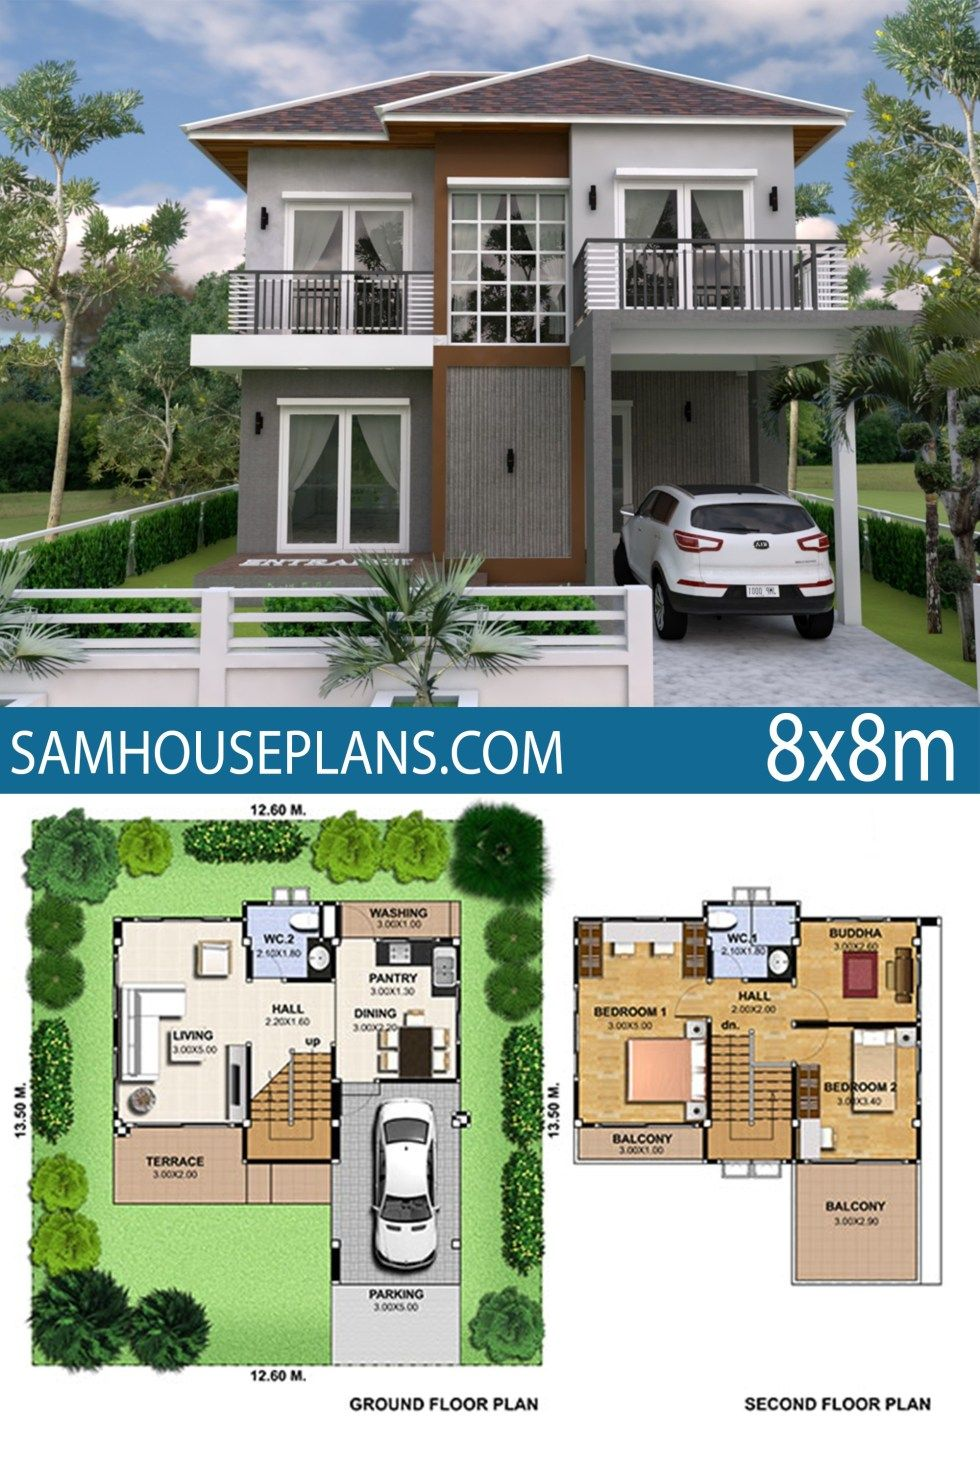 House Plan 8x8m With 3 Bedrooms Sam House Plans Square House Plans Architectural House Plans Two Story House Design